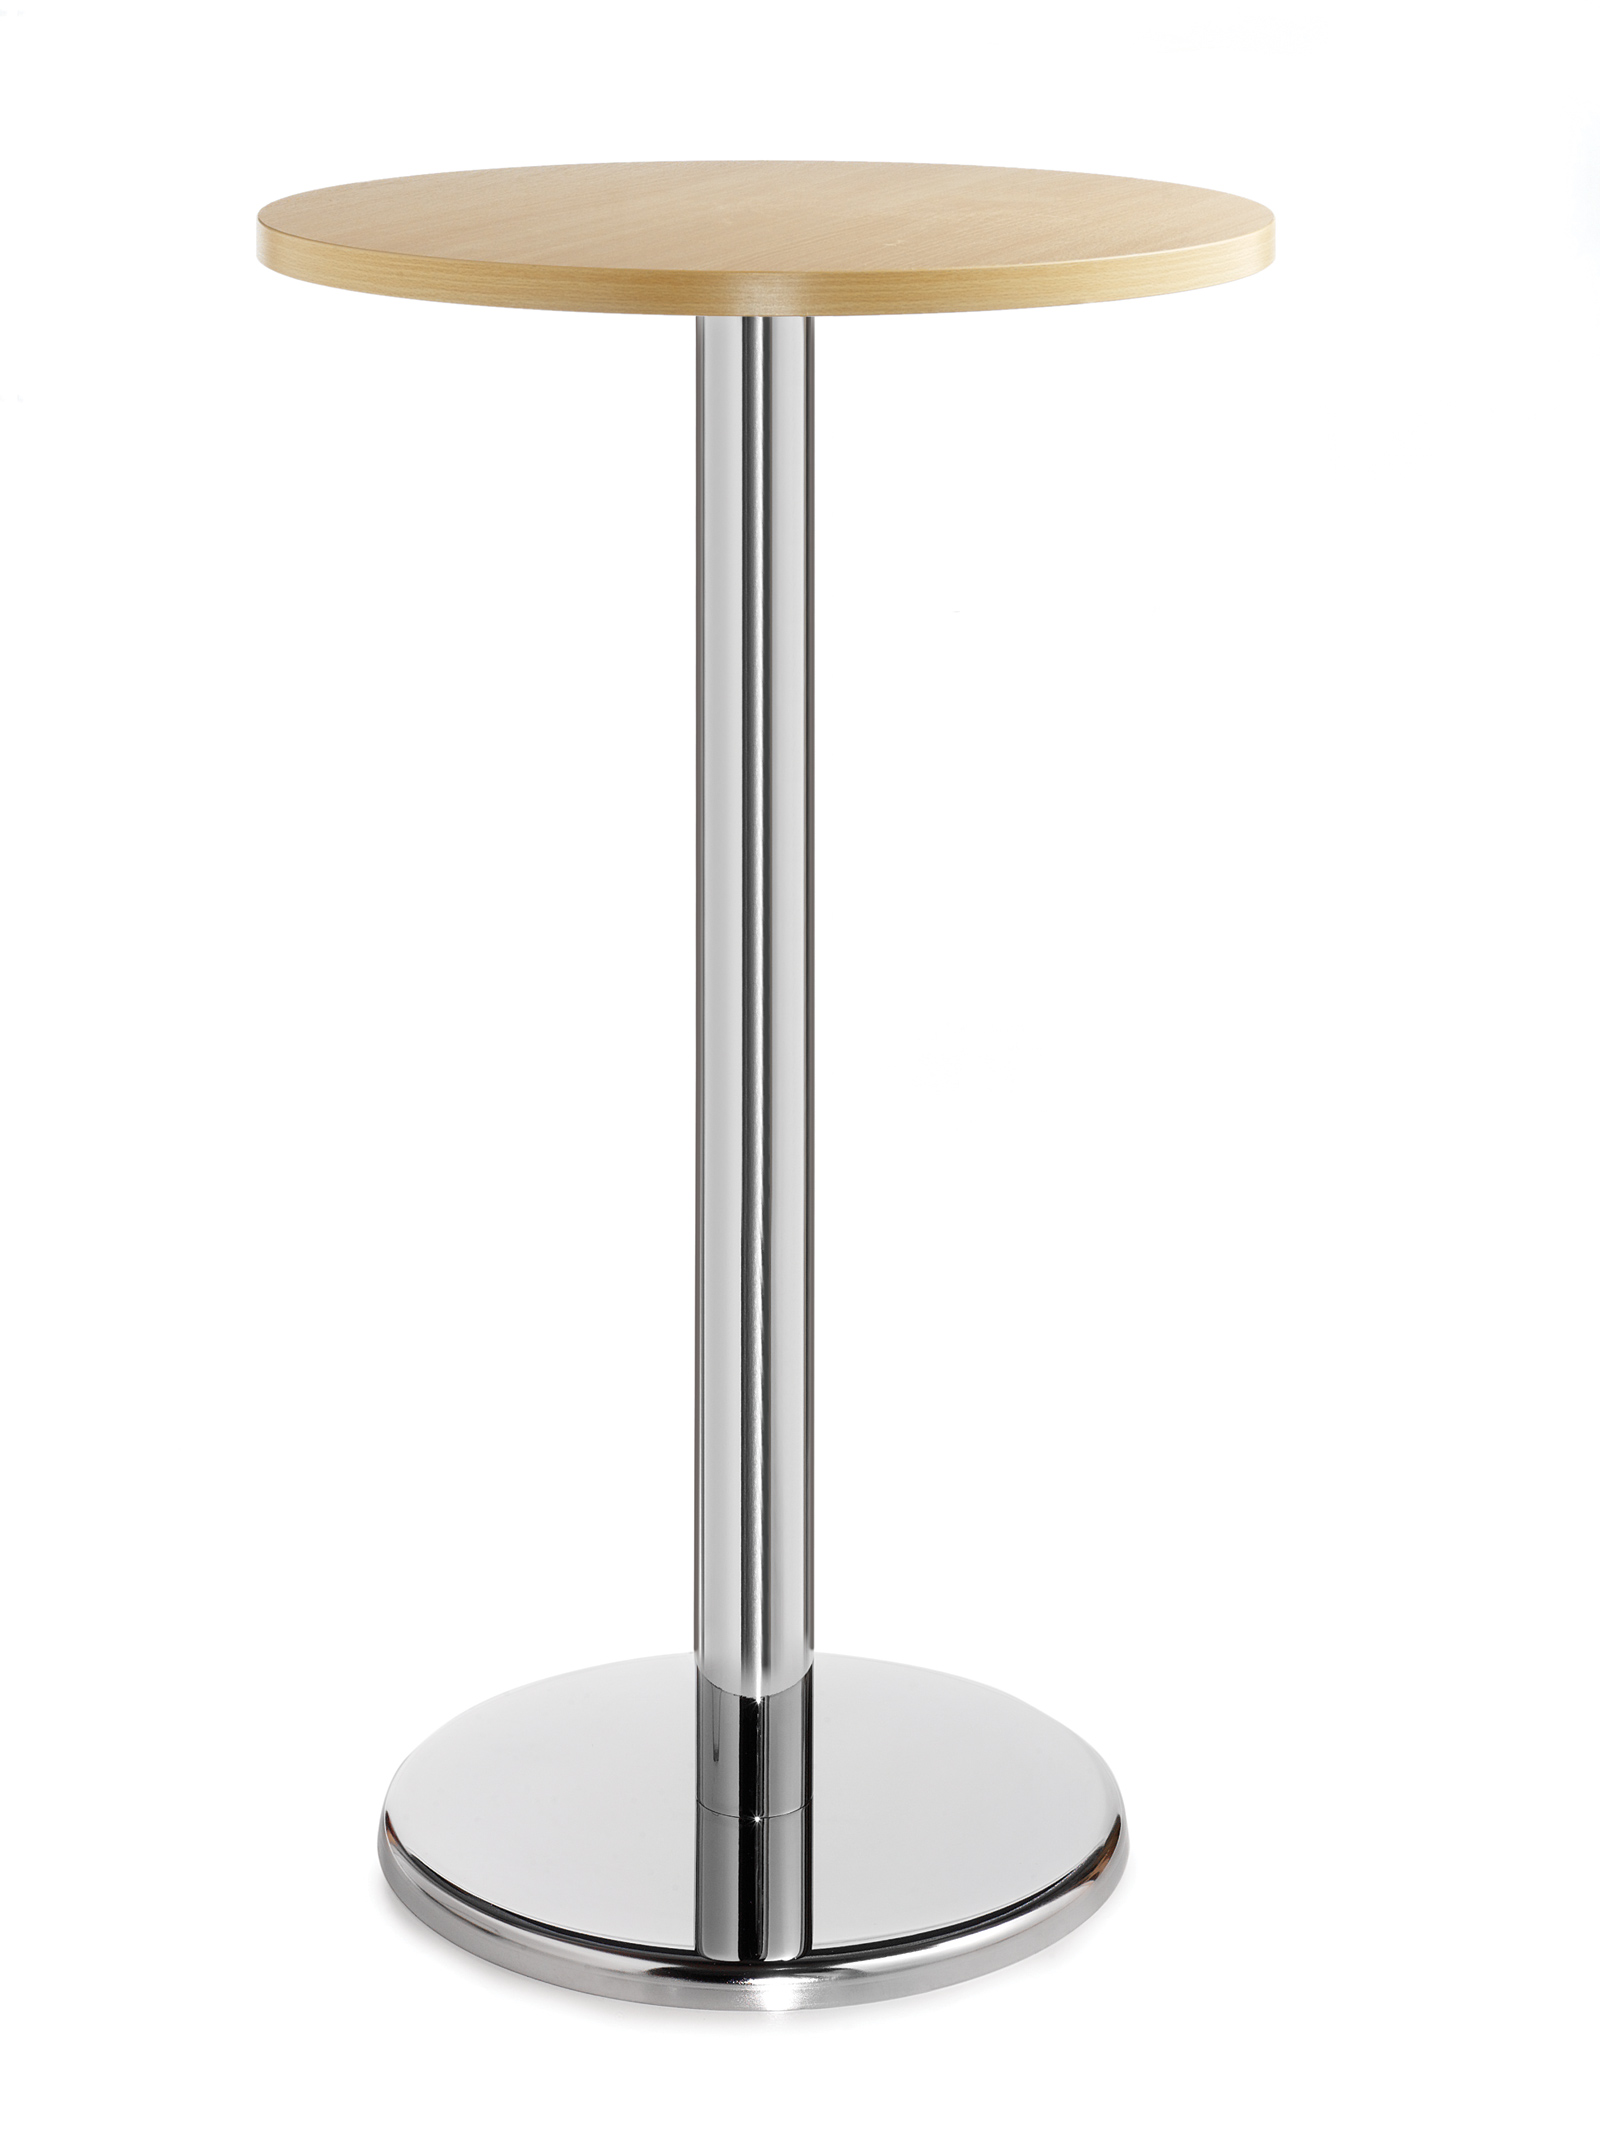 Pisa circular poseur table with round chrome base 800mm - beech